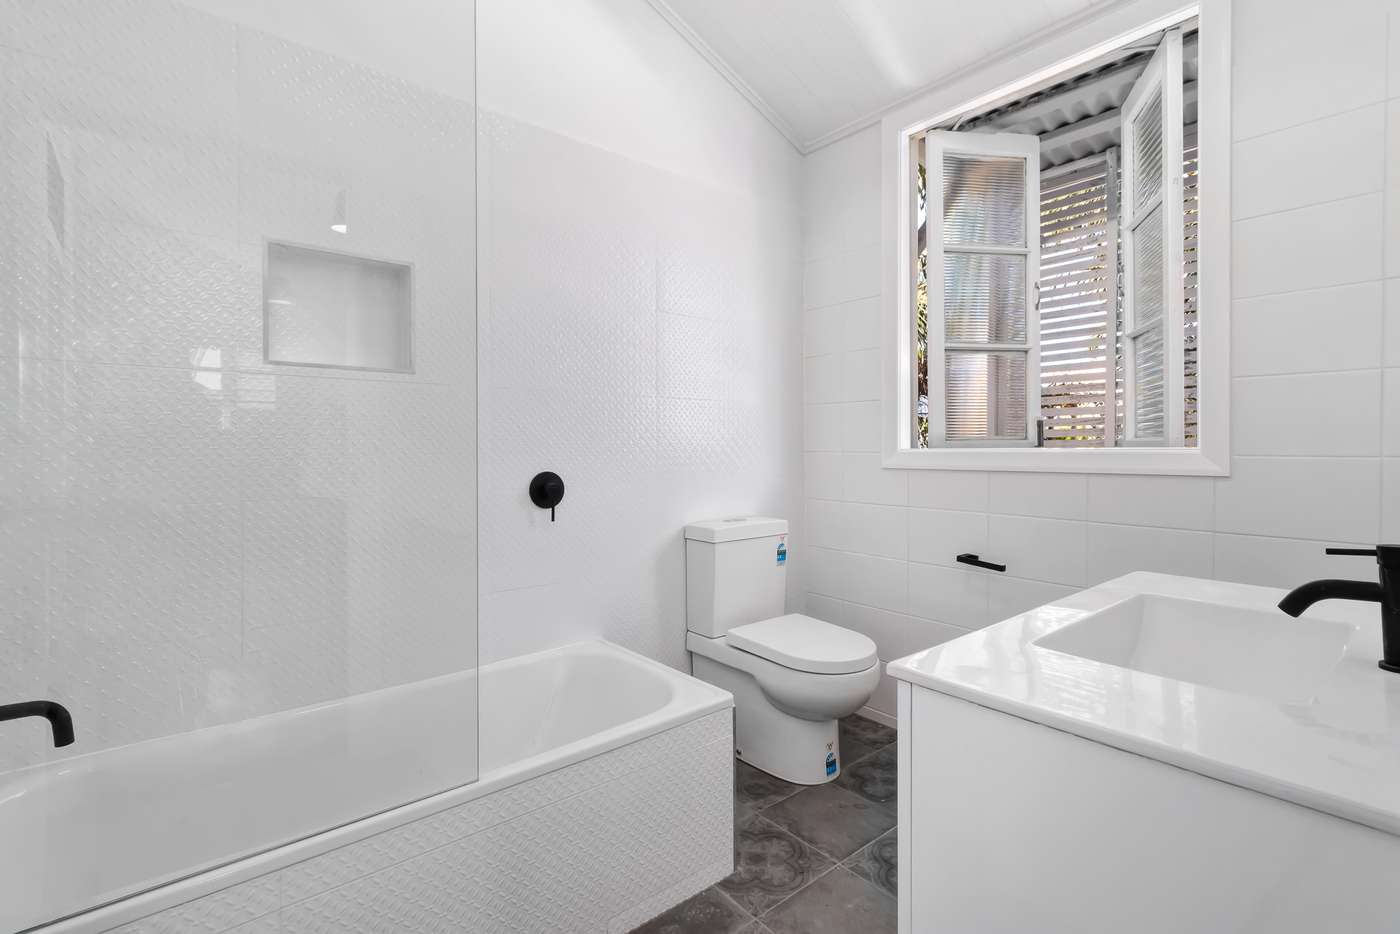 Sixth view of Homely house listing, 14 Albert St, Woolloongabba QLD 4102